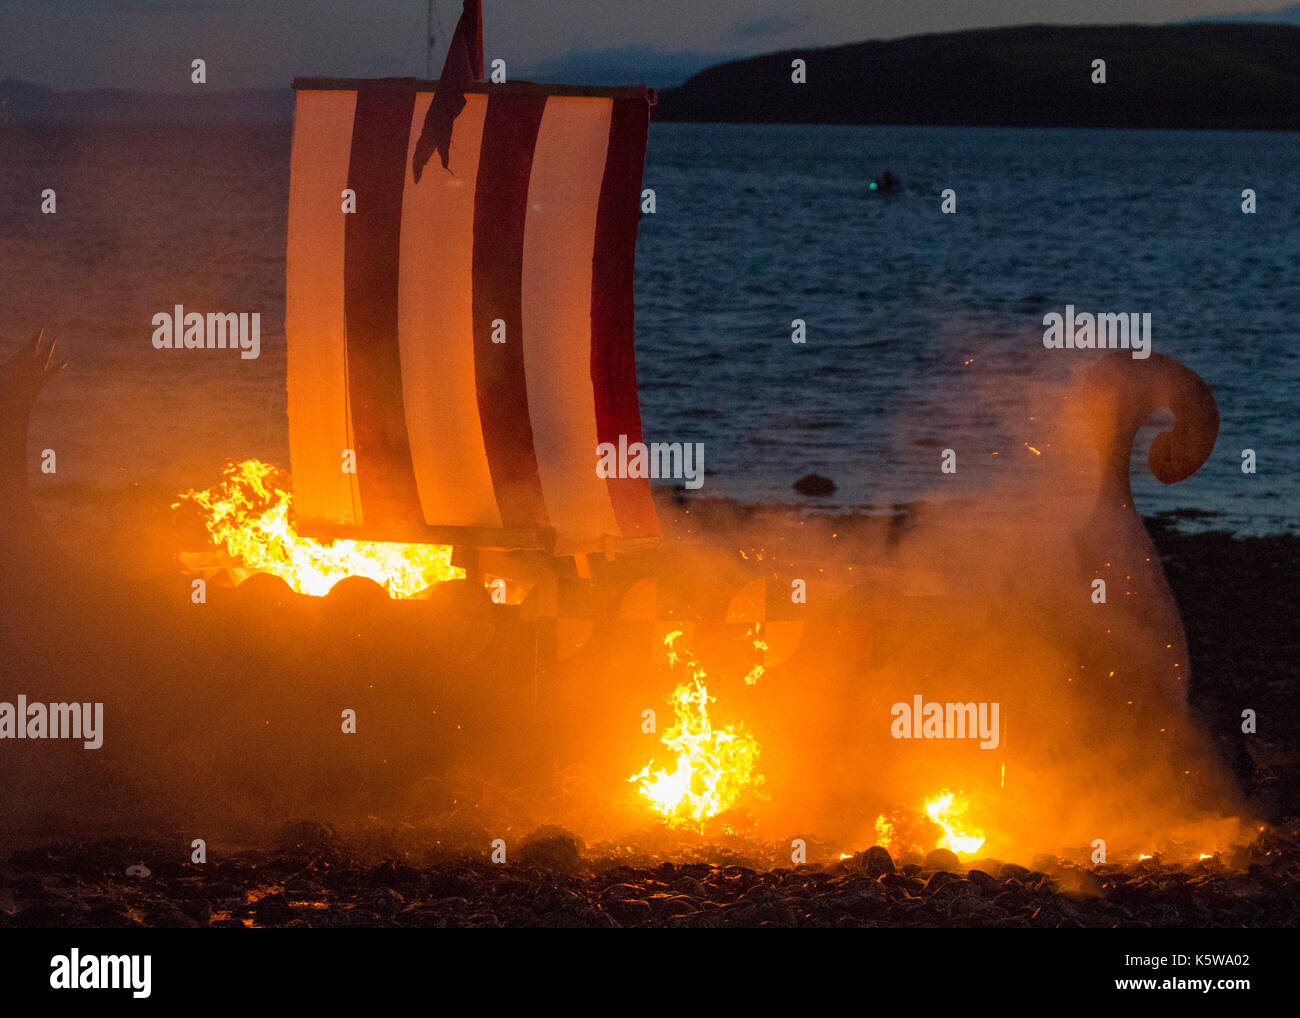 The burning of a Viking longship in Scotland.  The Battle of Largs (2 October 1263) Re-enactment event by the Swords of Dalriada, 13th Century, living history group. - Stock Image